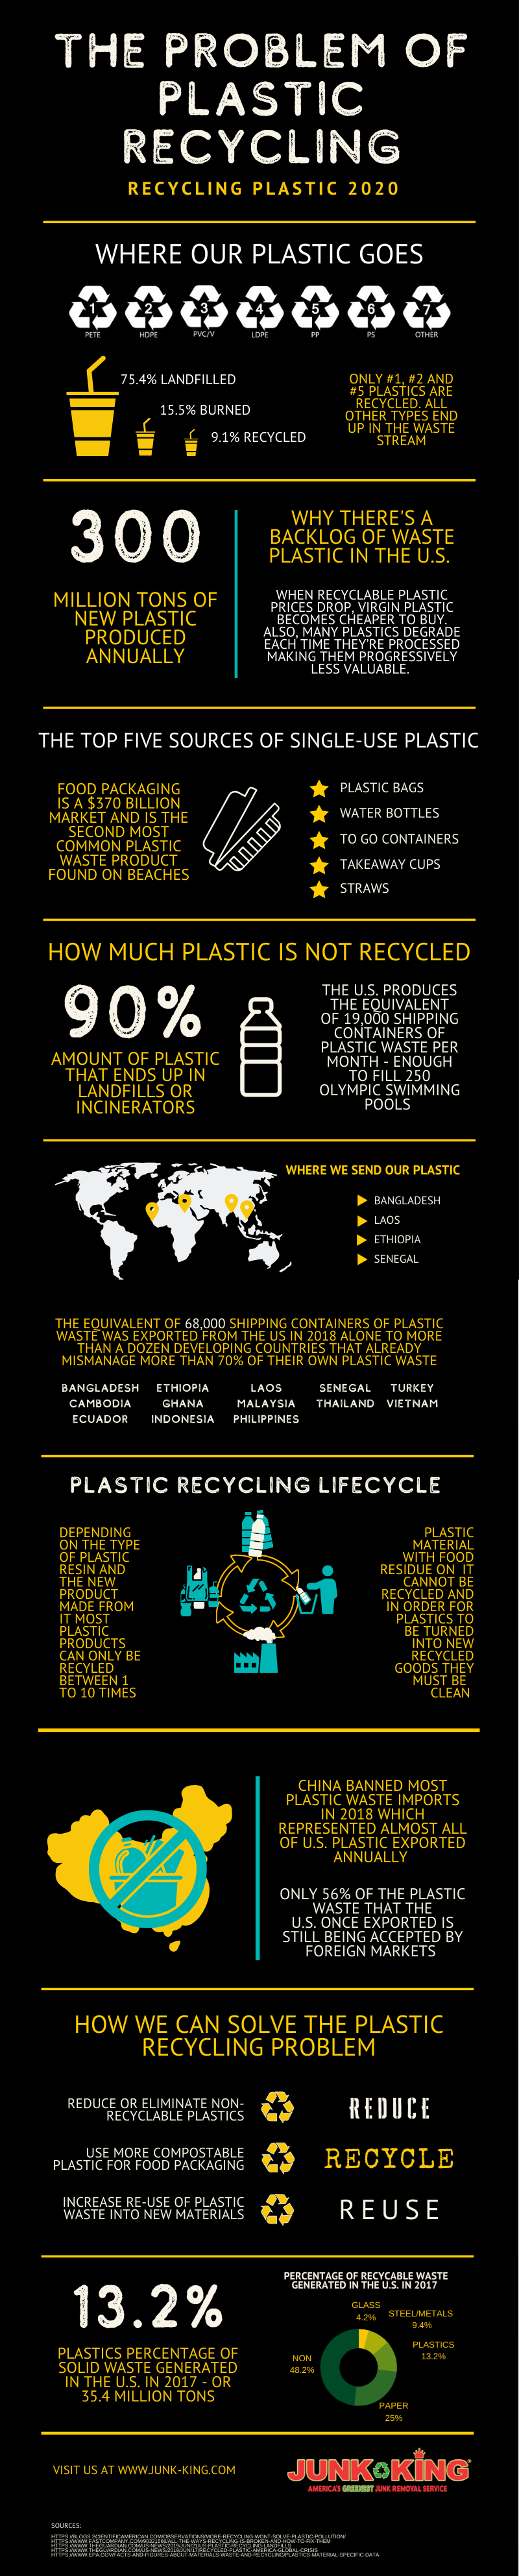 the problem with plastic recycling